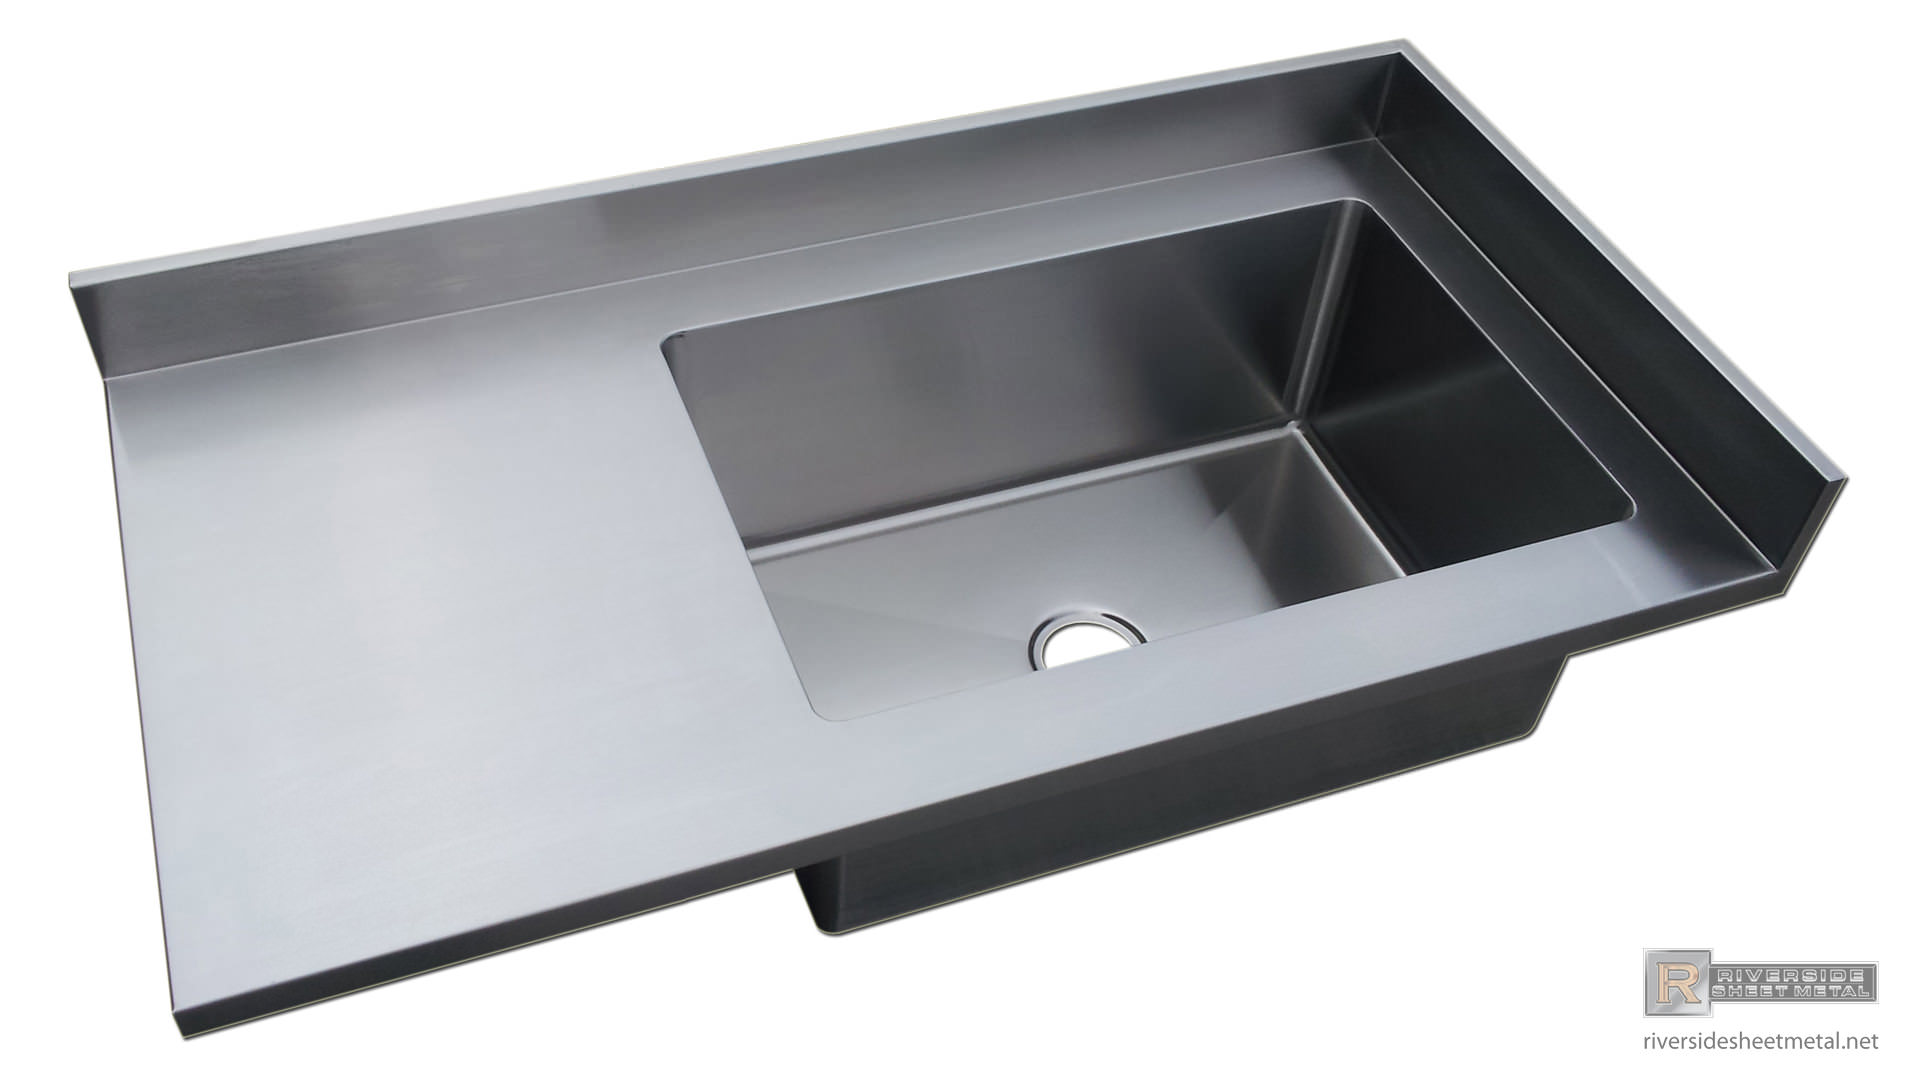 Stainless steel 4 finish counter top with integrated sink for Stainless steel countertop with integral sink